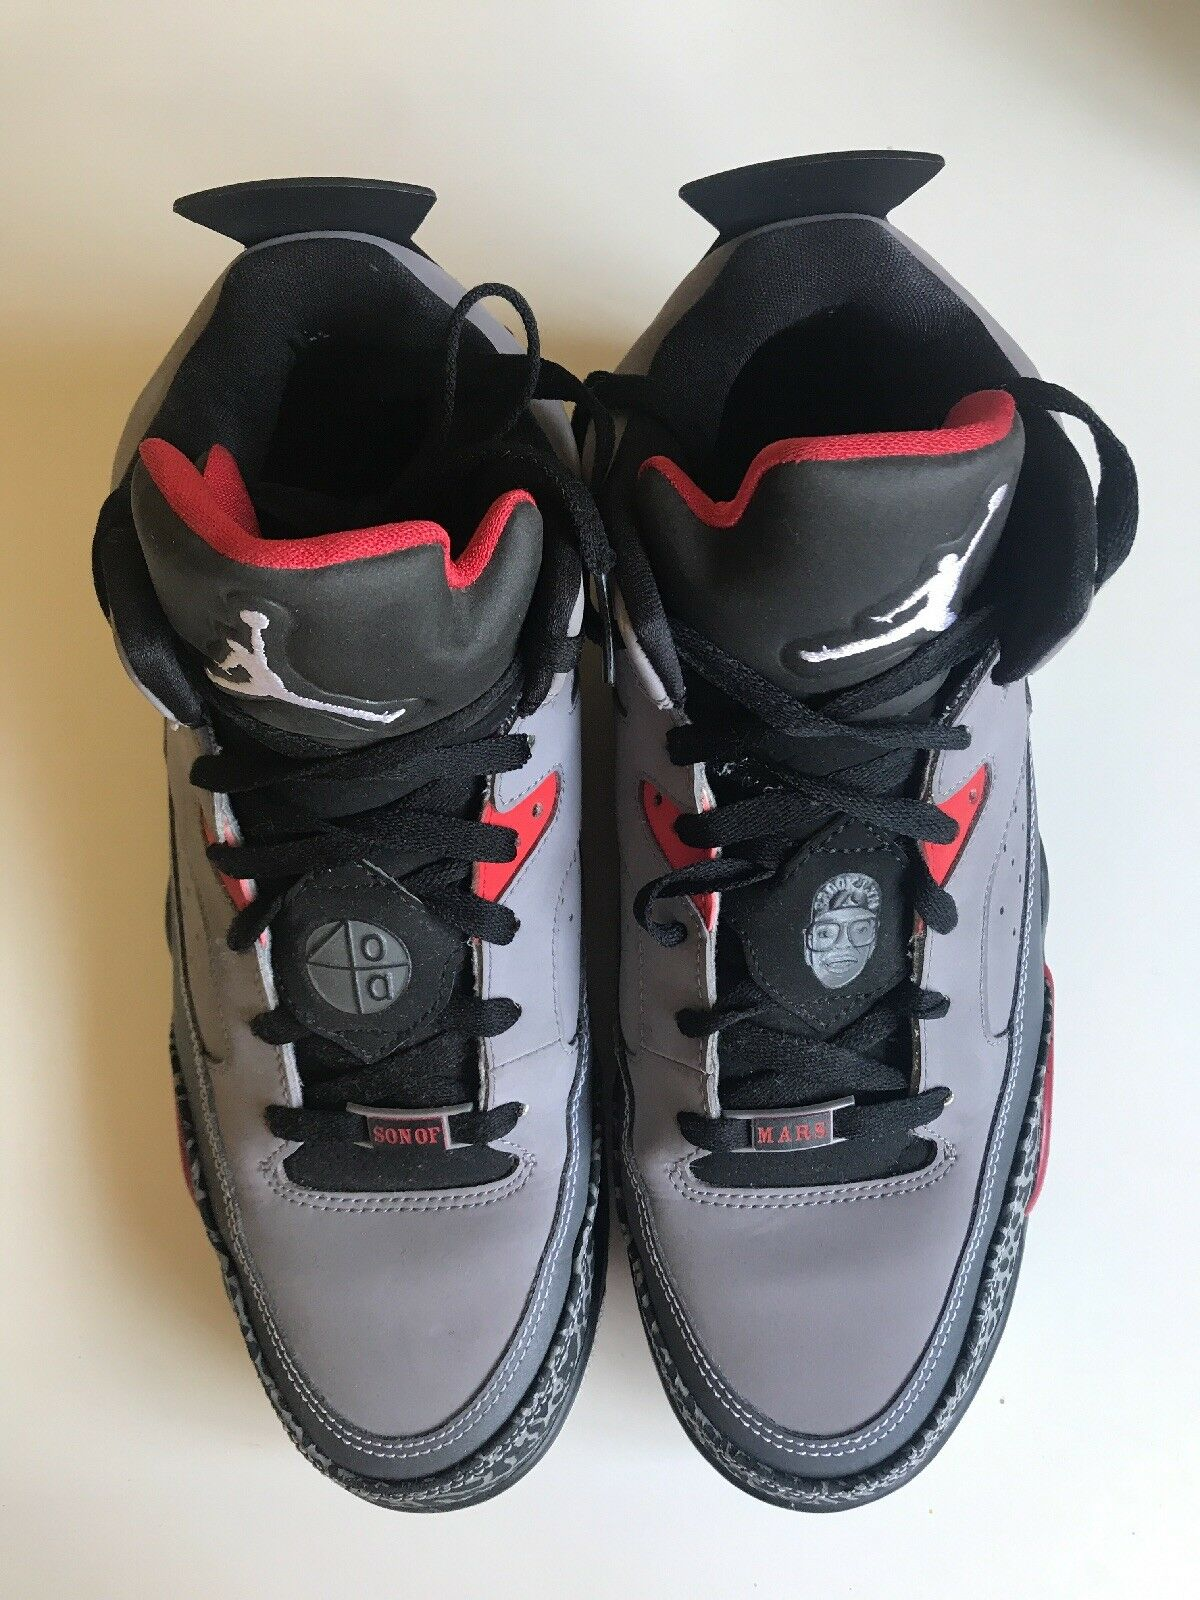 Nike Air Jordan Son Of Mars Cement Grey/ White/ Black/ Red, 580603 004, Comfortable Comfortable and good-looking